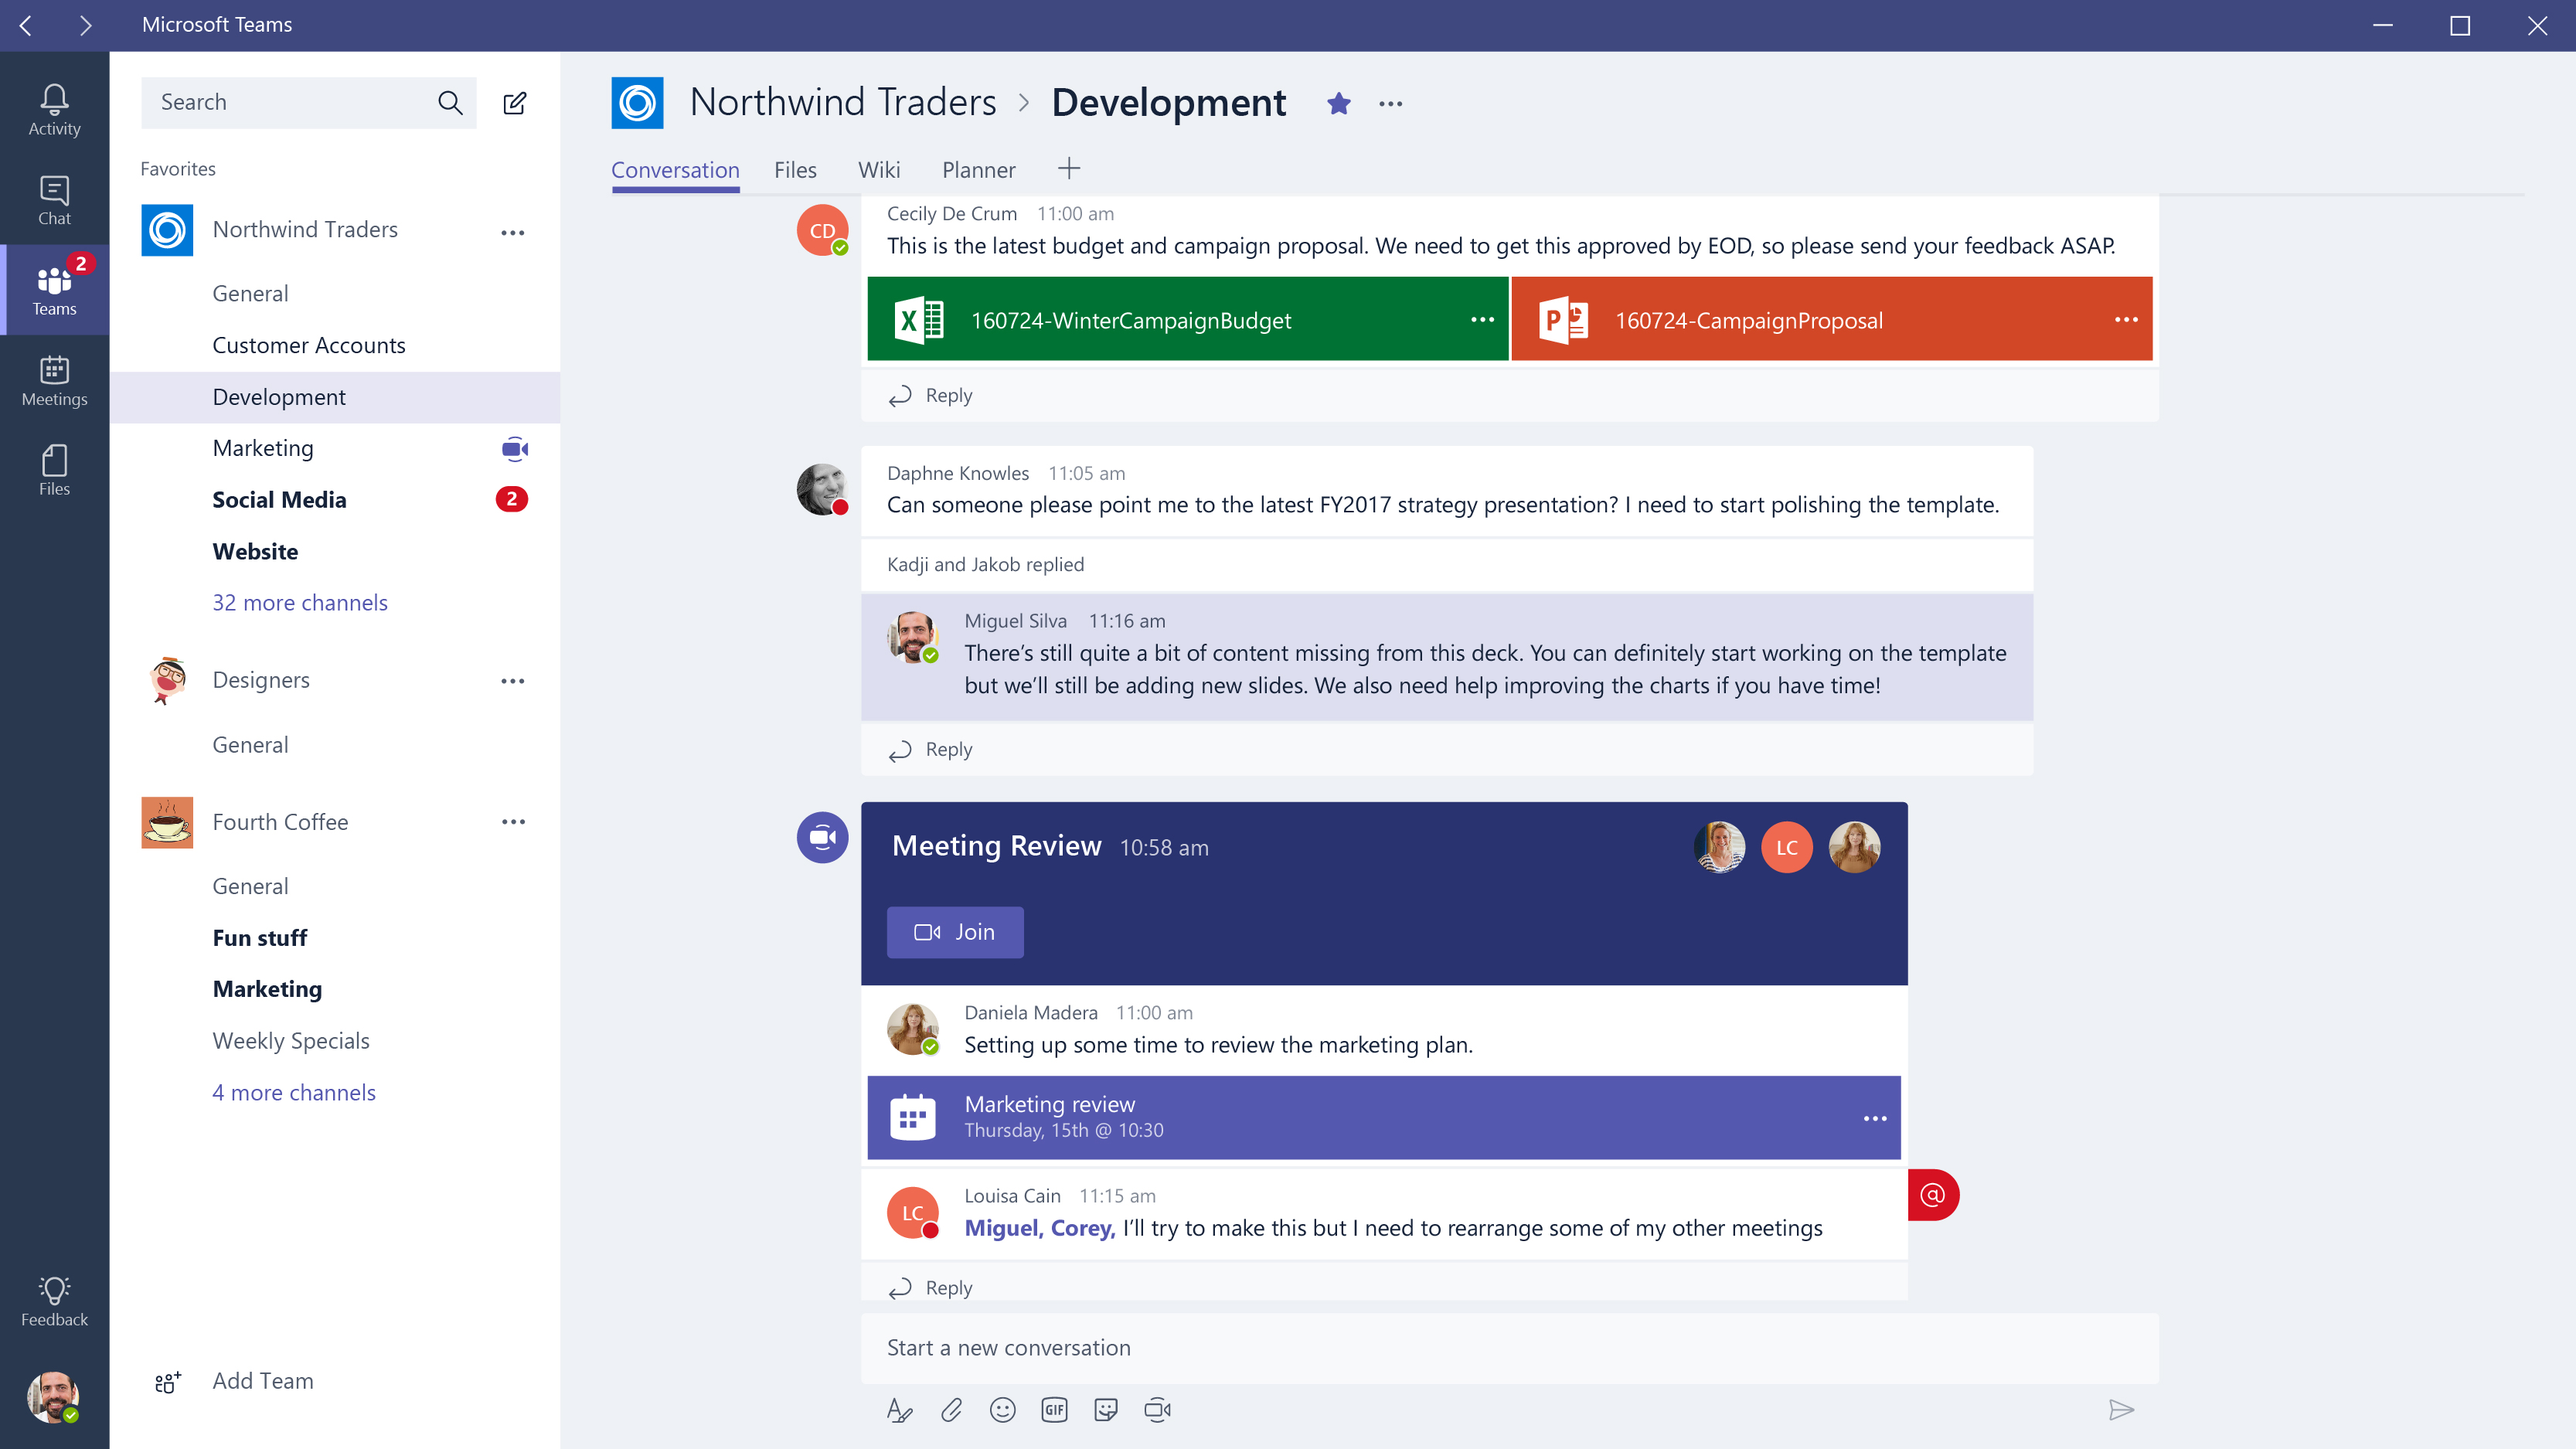 Microsoft Teams Dashboard